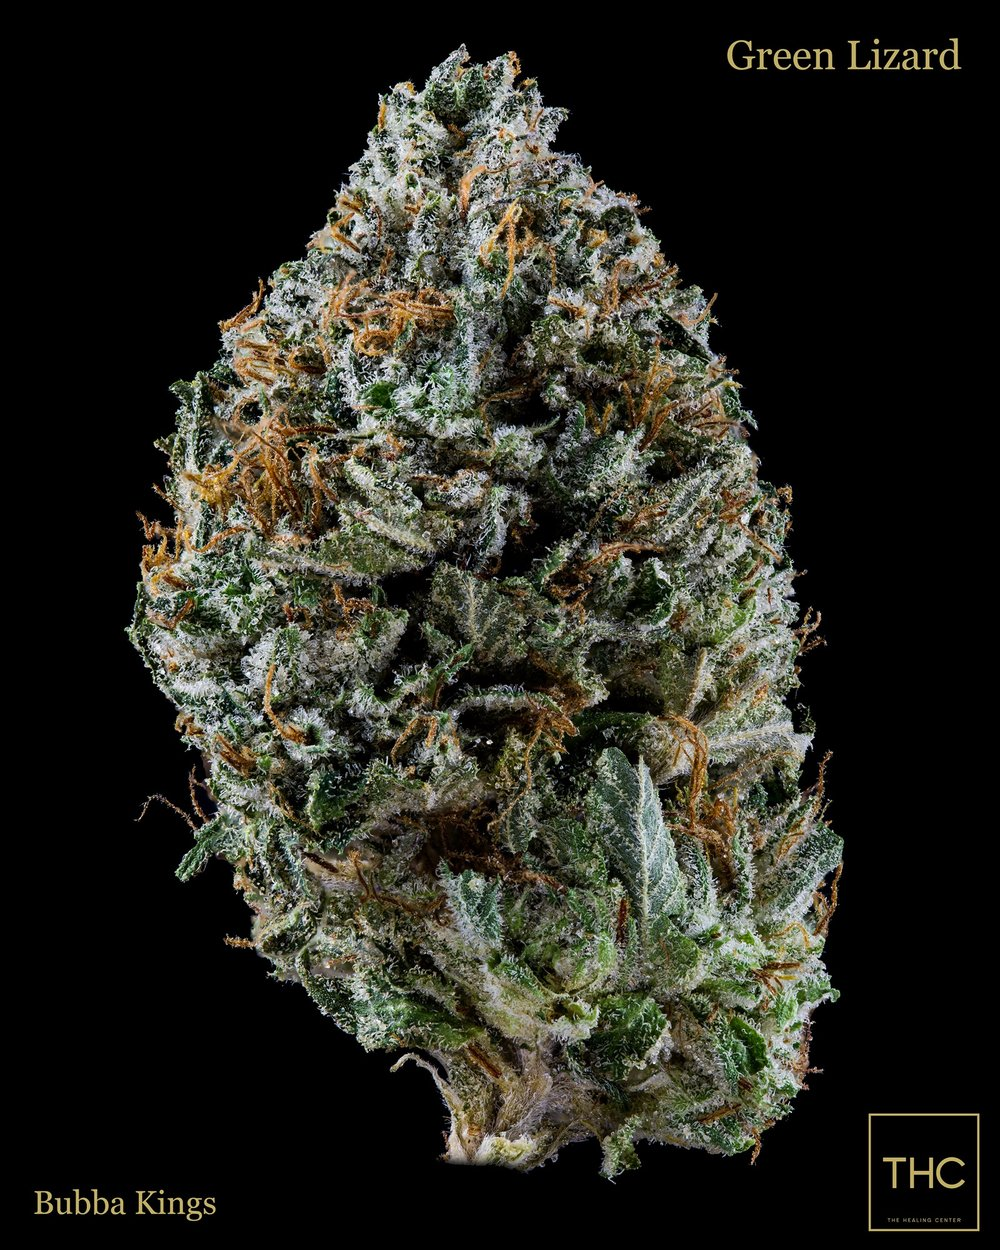 Green Lizard Bubba Kings THC b.jpg